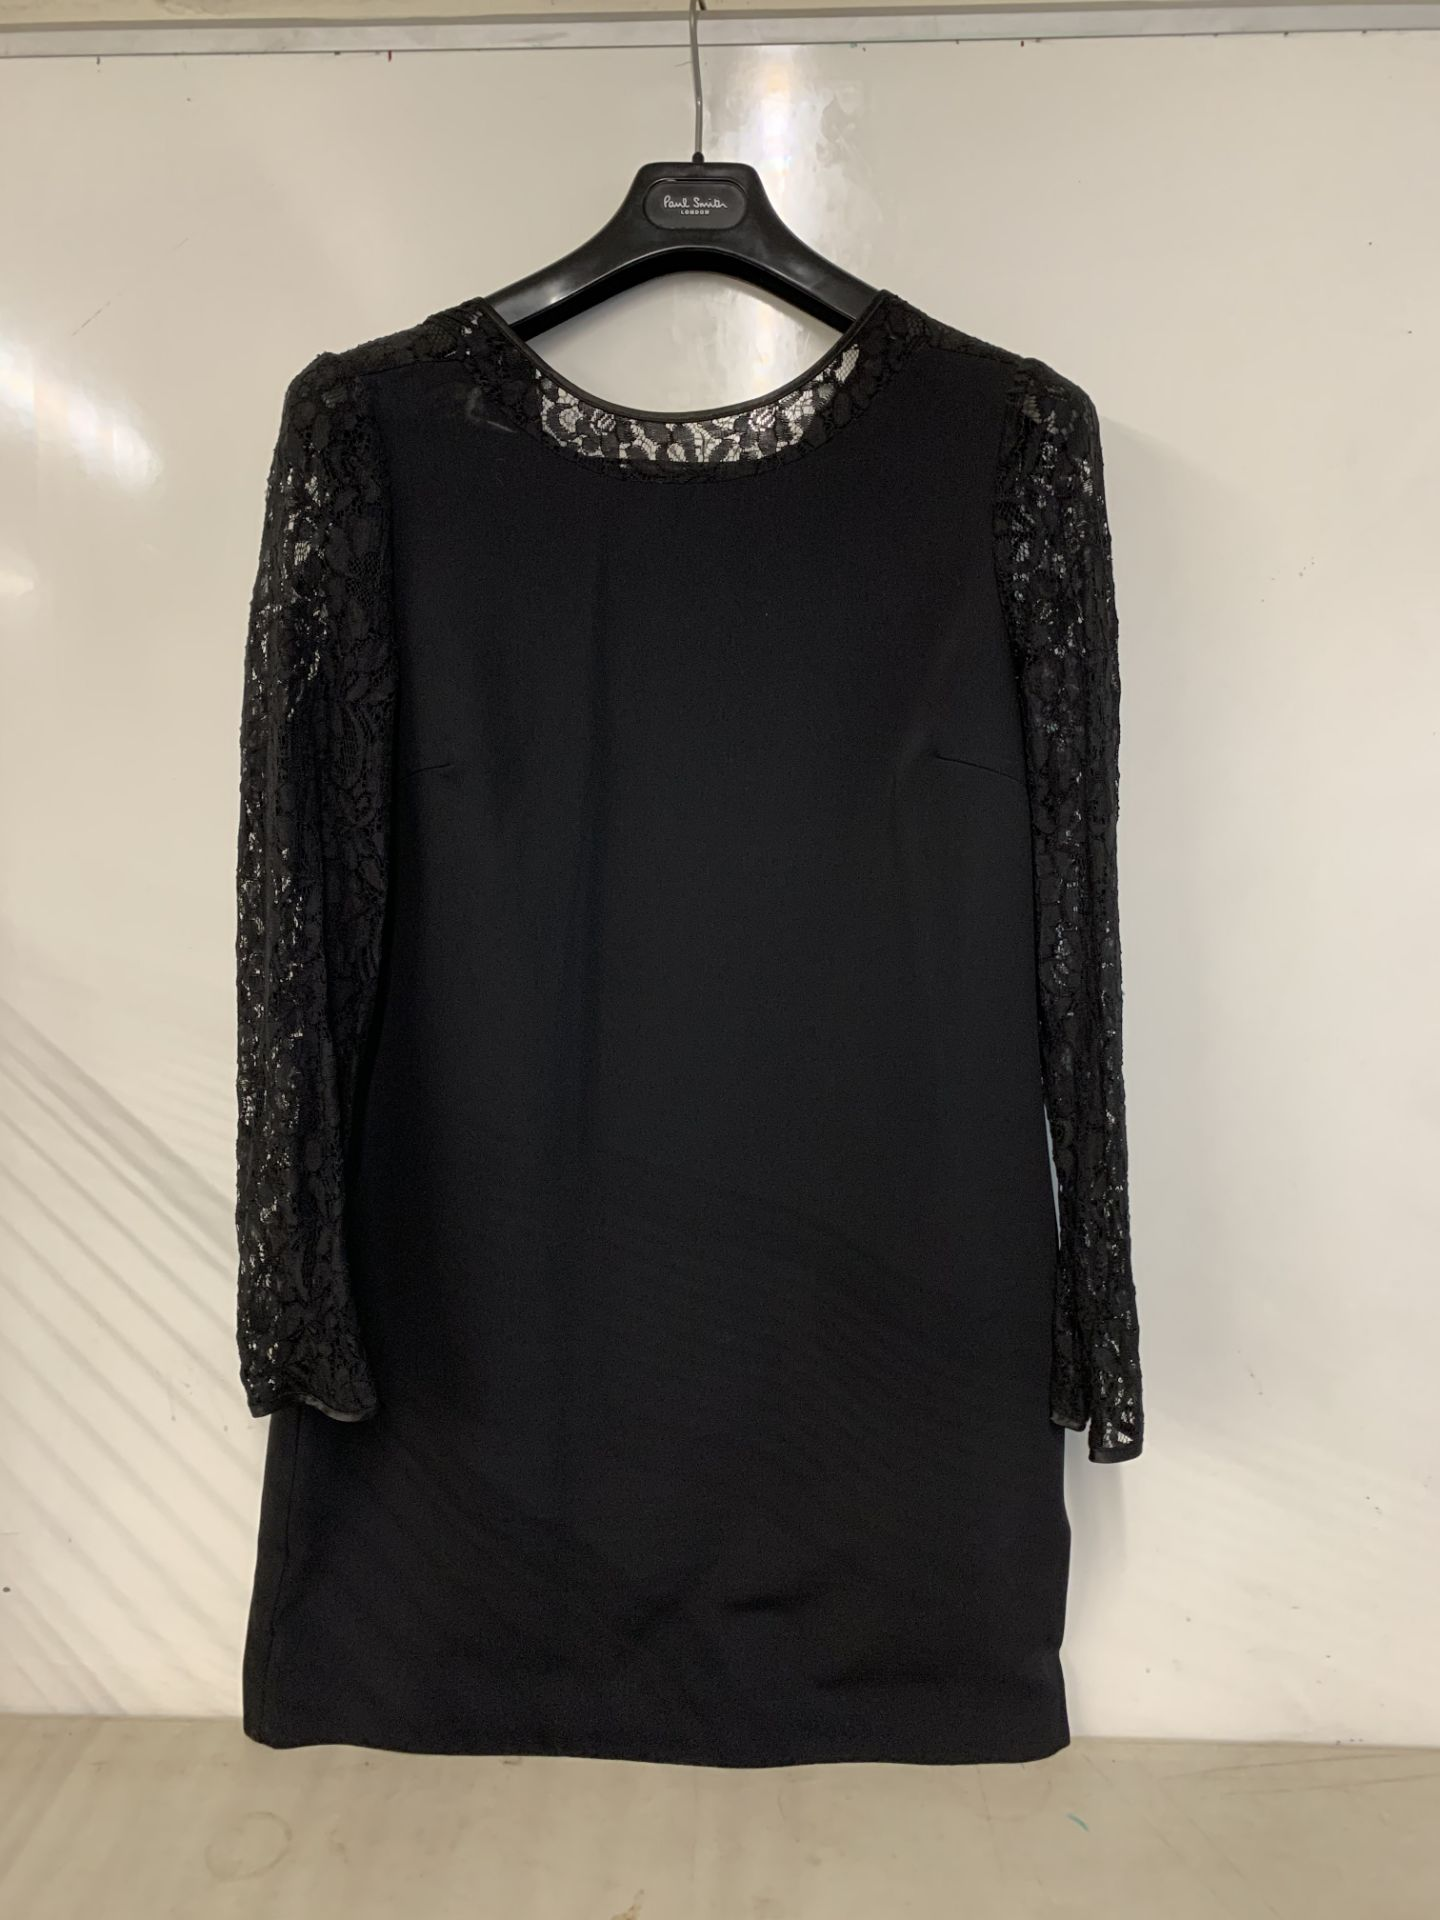 Lot 21 - Riess women's black dress